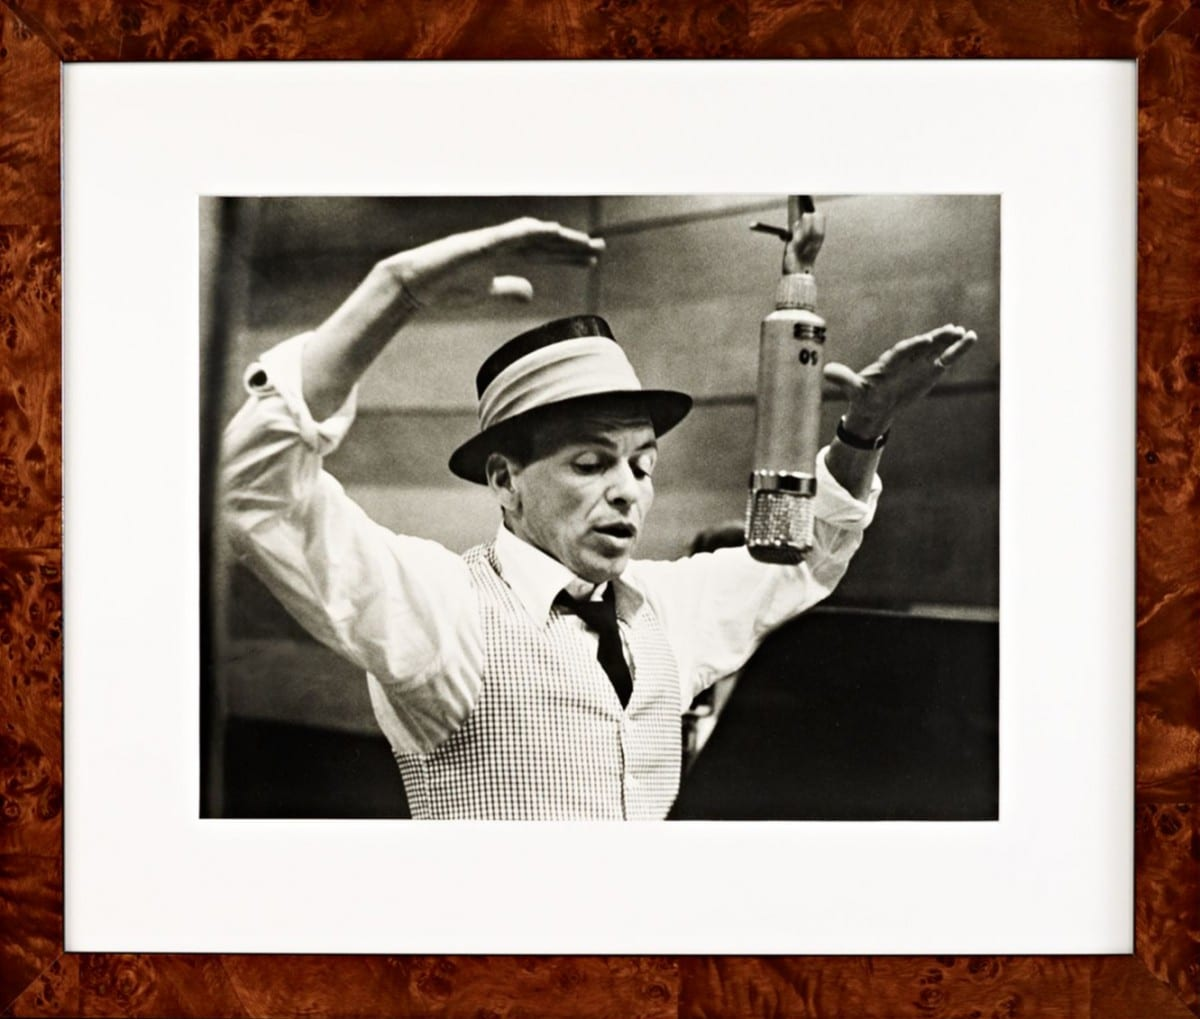 Murray Garrett, Sinatra Recording Session, gelatin silver print on archival fiber paper, 1953 ©Ralph Lauren Home and Getty Images